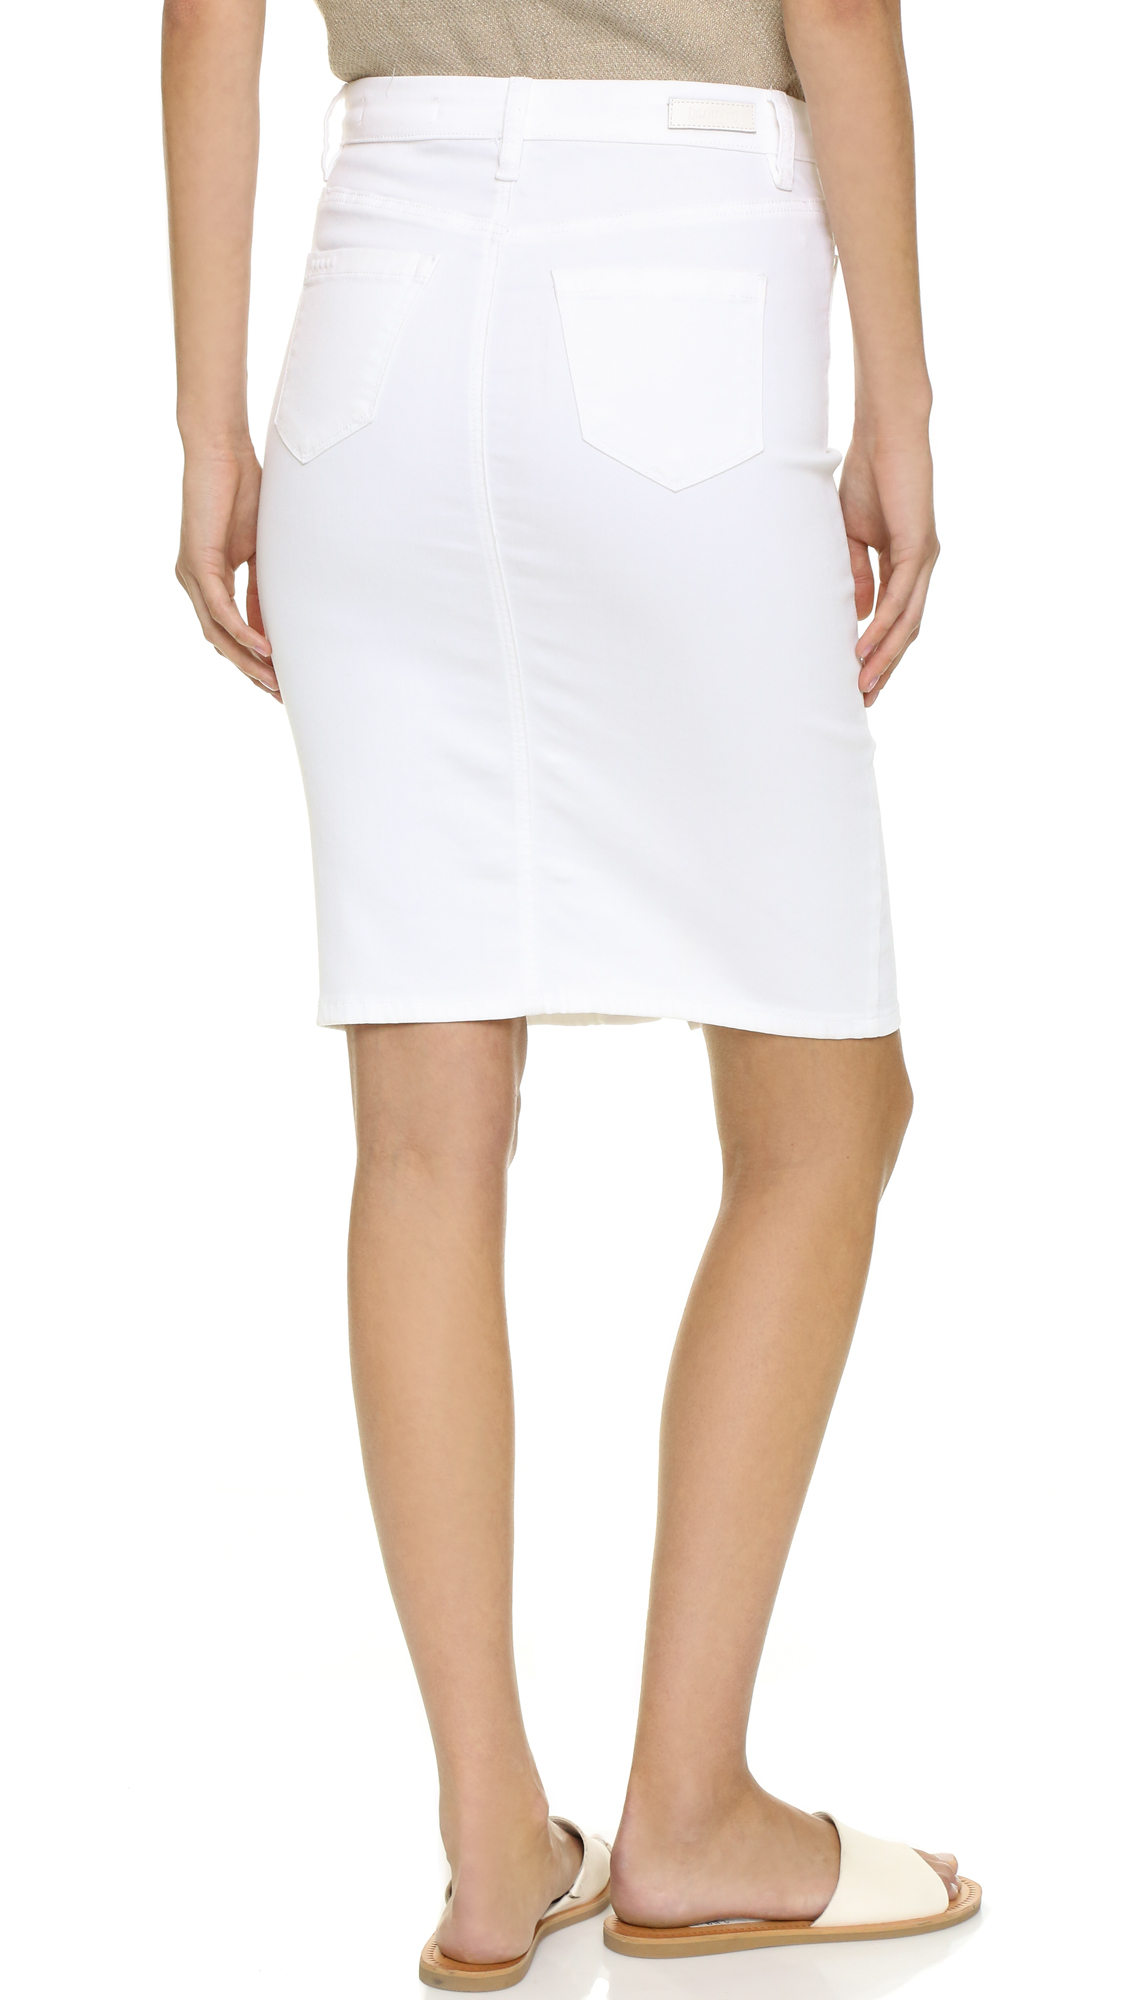 Shop our Collection of Women's Skirts at lolapalka.cf for the Latest Designer Brands & Styles. FREE SHIPPING AVAILABLE!